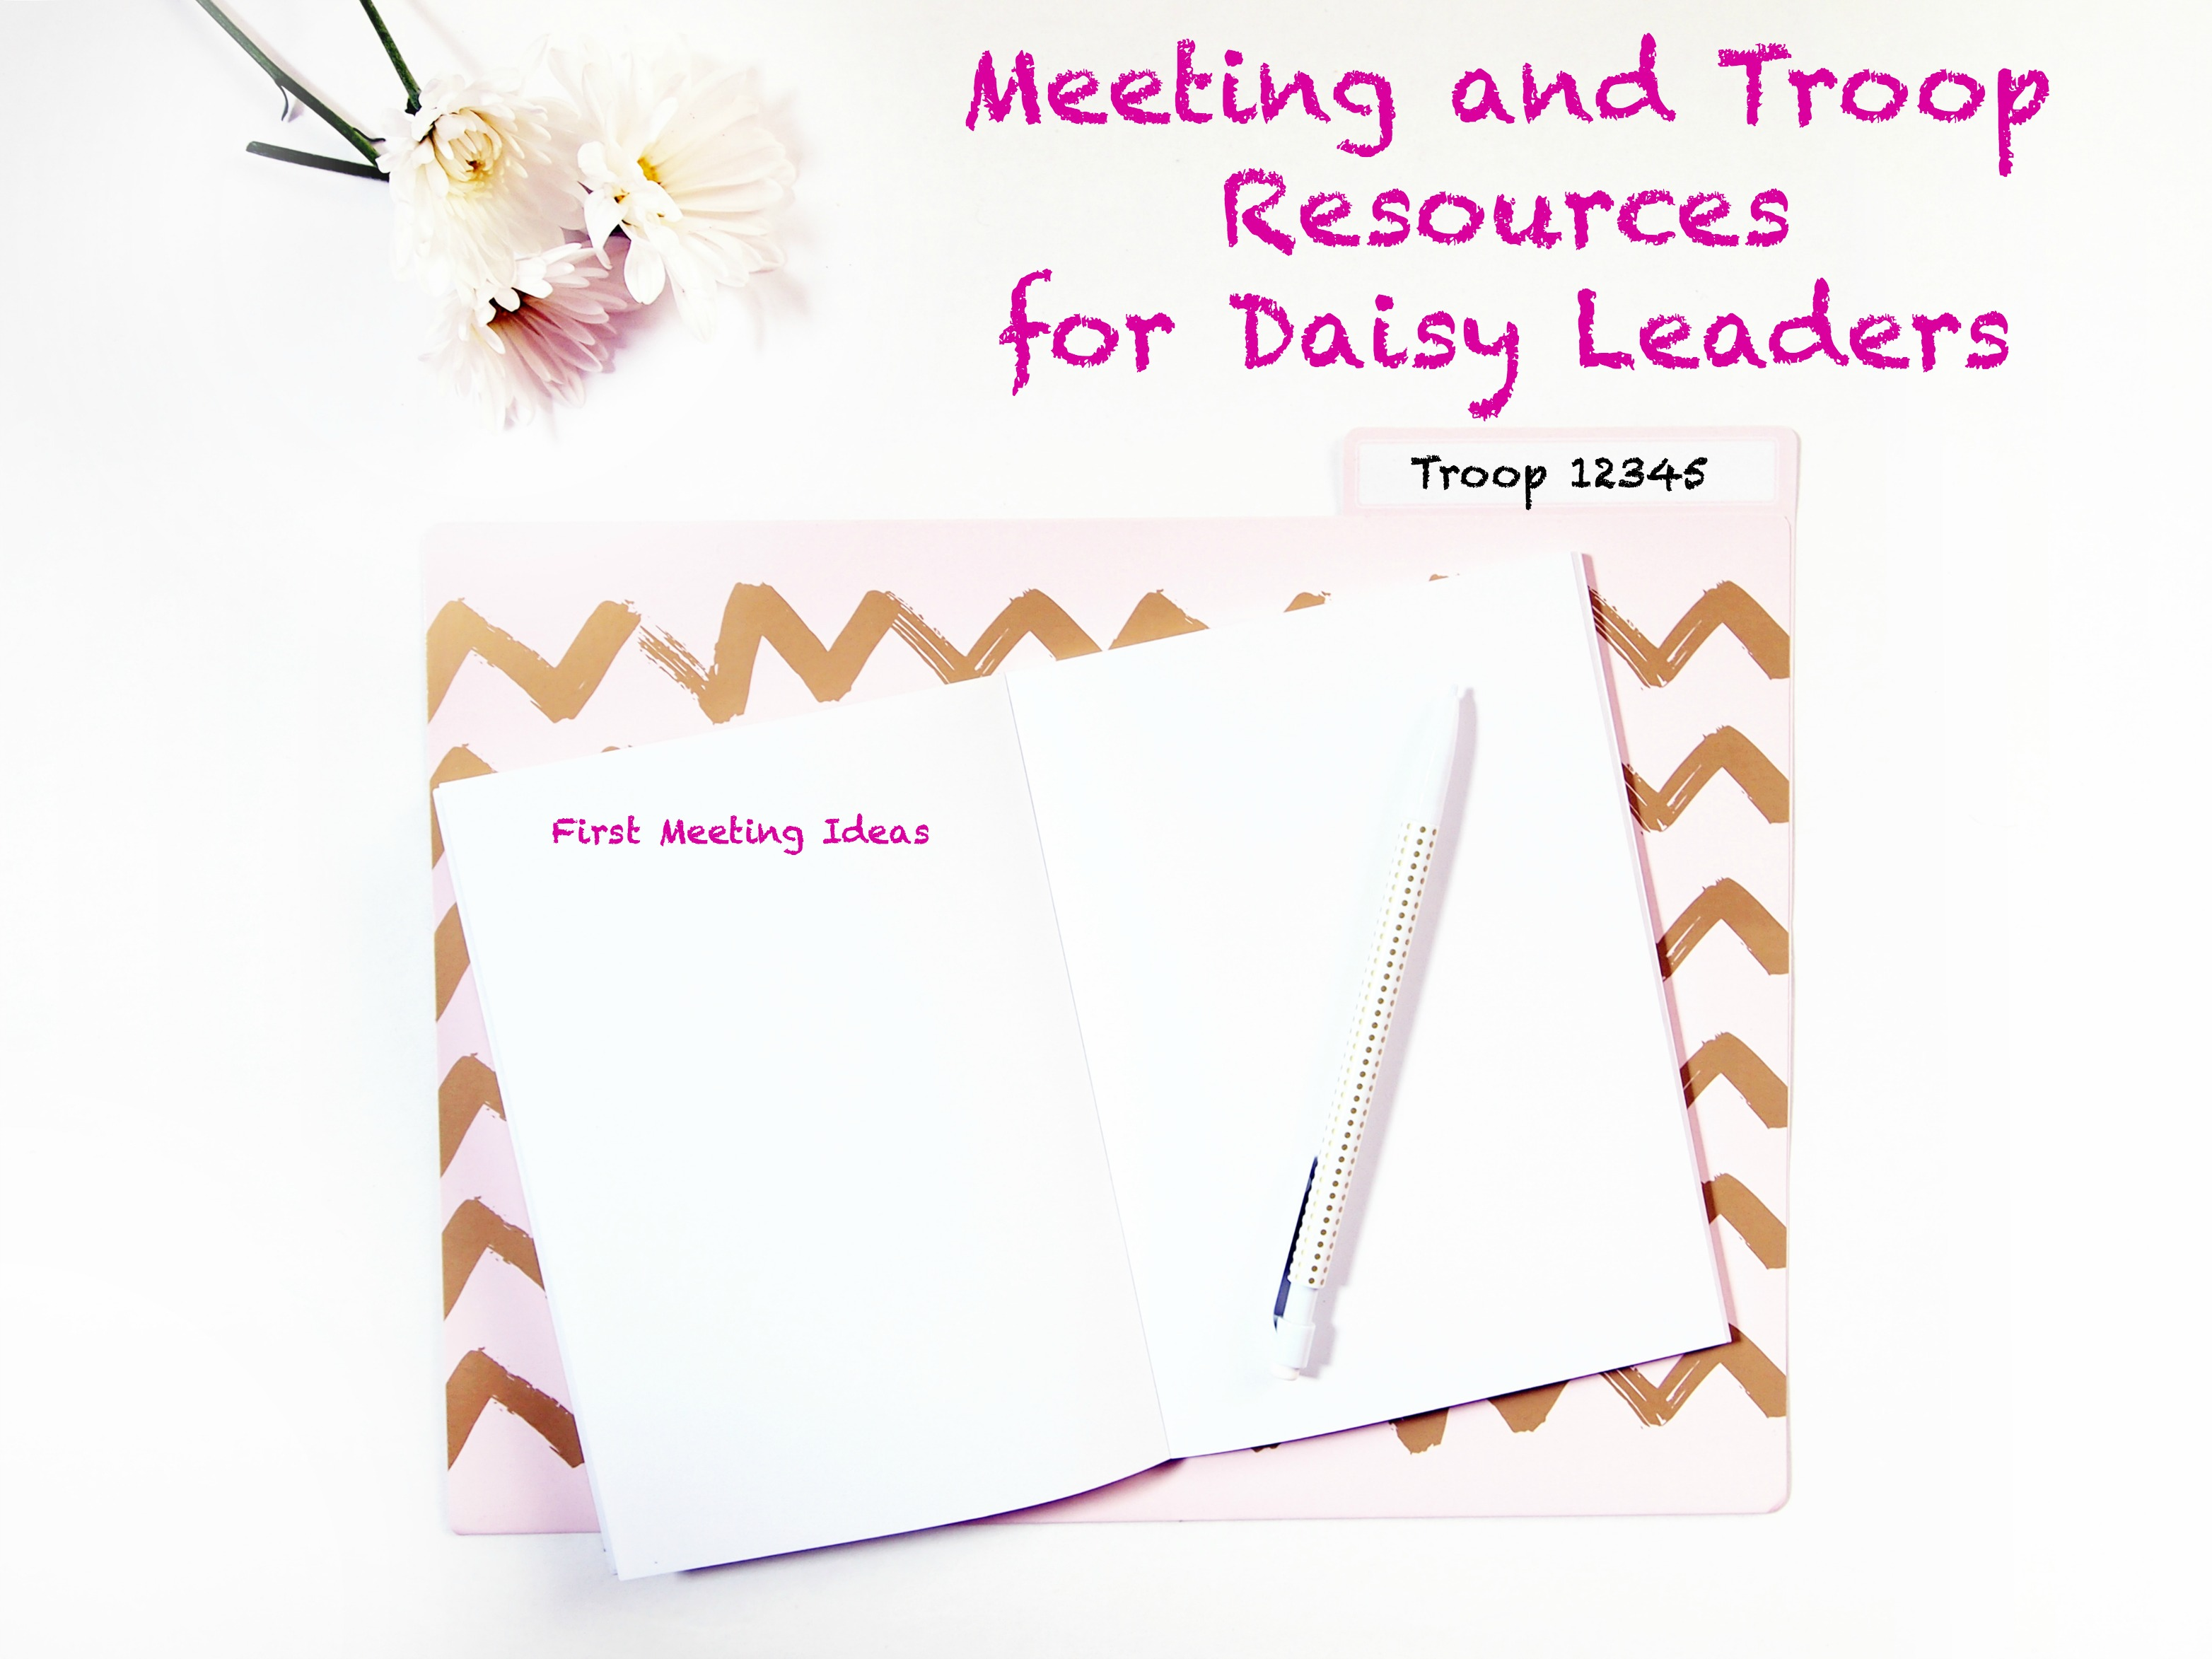 Here is a list of online resources that new Daisy leaders can use for planning their first or second year of troop meetings.